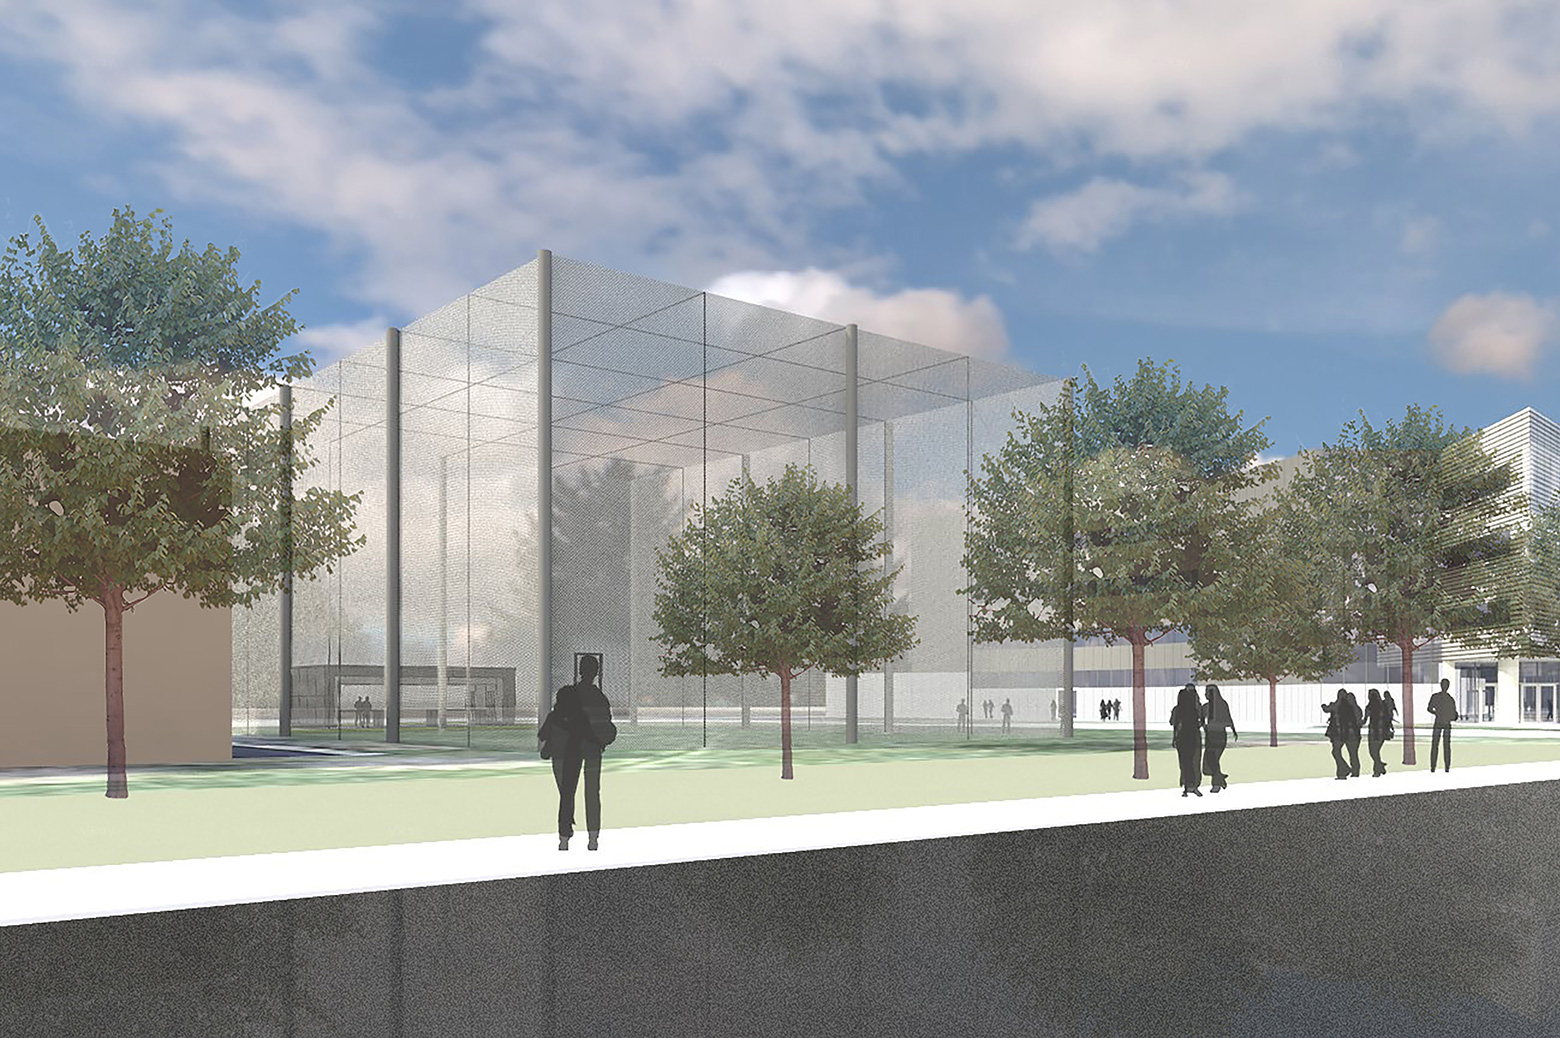 Outdoor Drone Complex Planned The Michigan Engineer News Center